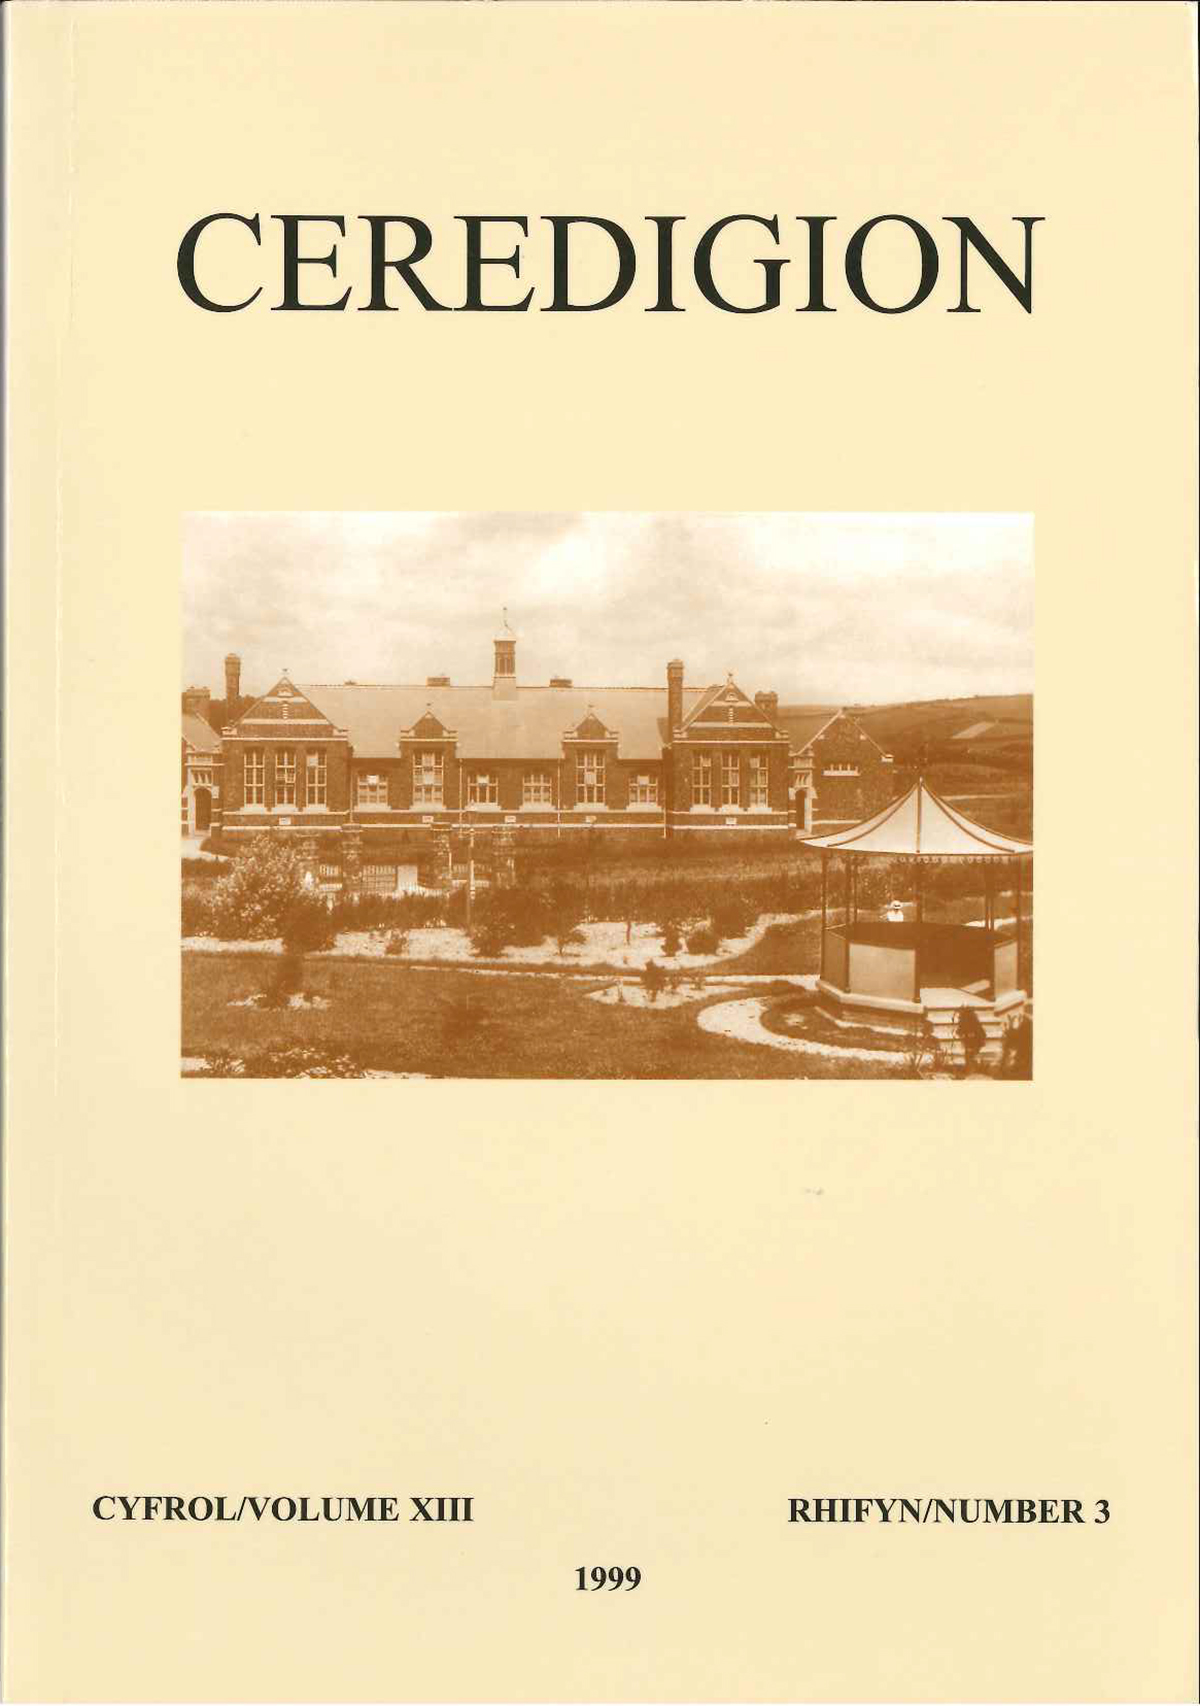 Ceredigion Journal of the Ceredigion Antiquarian Society Vol XIII, No 3 1999 - ISBN 0069 2263